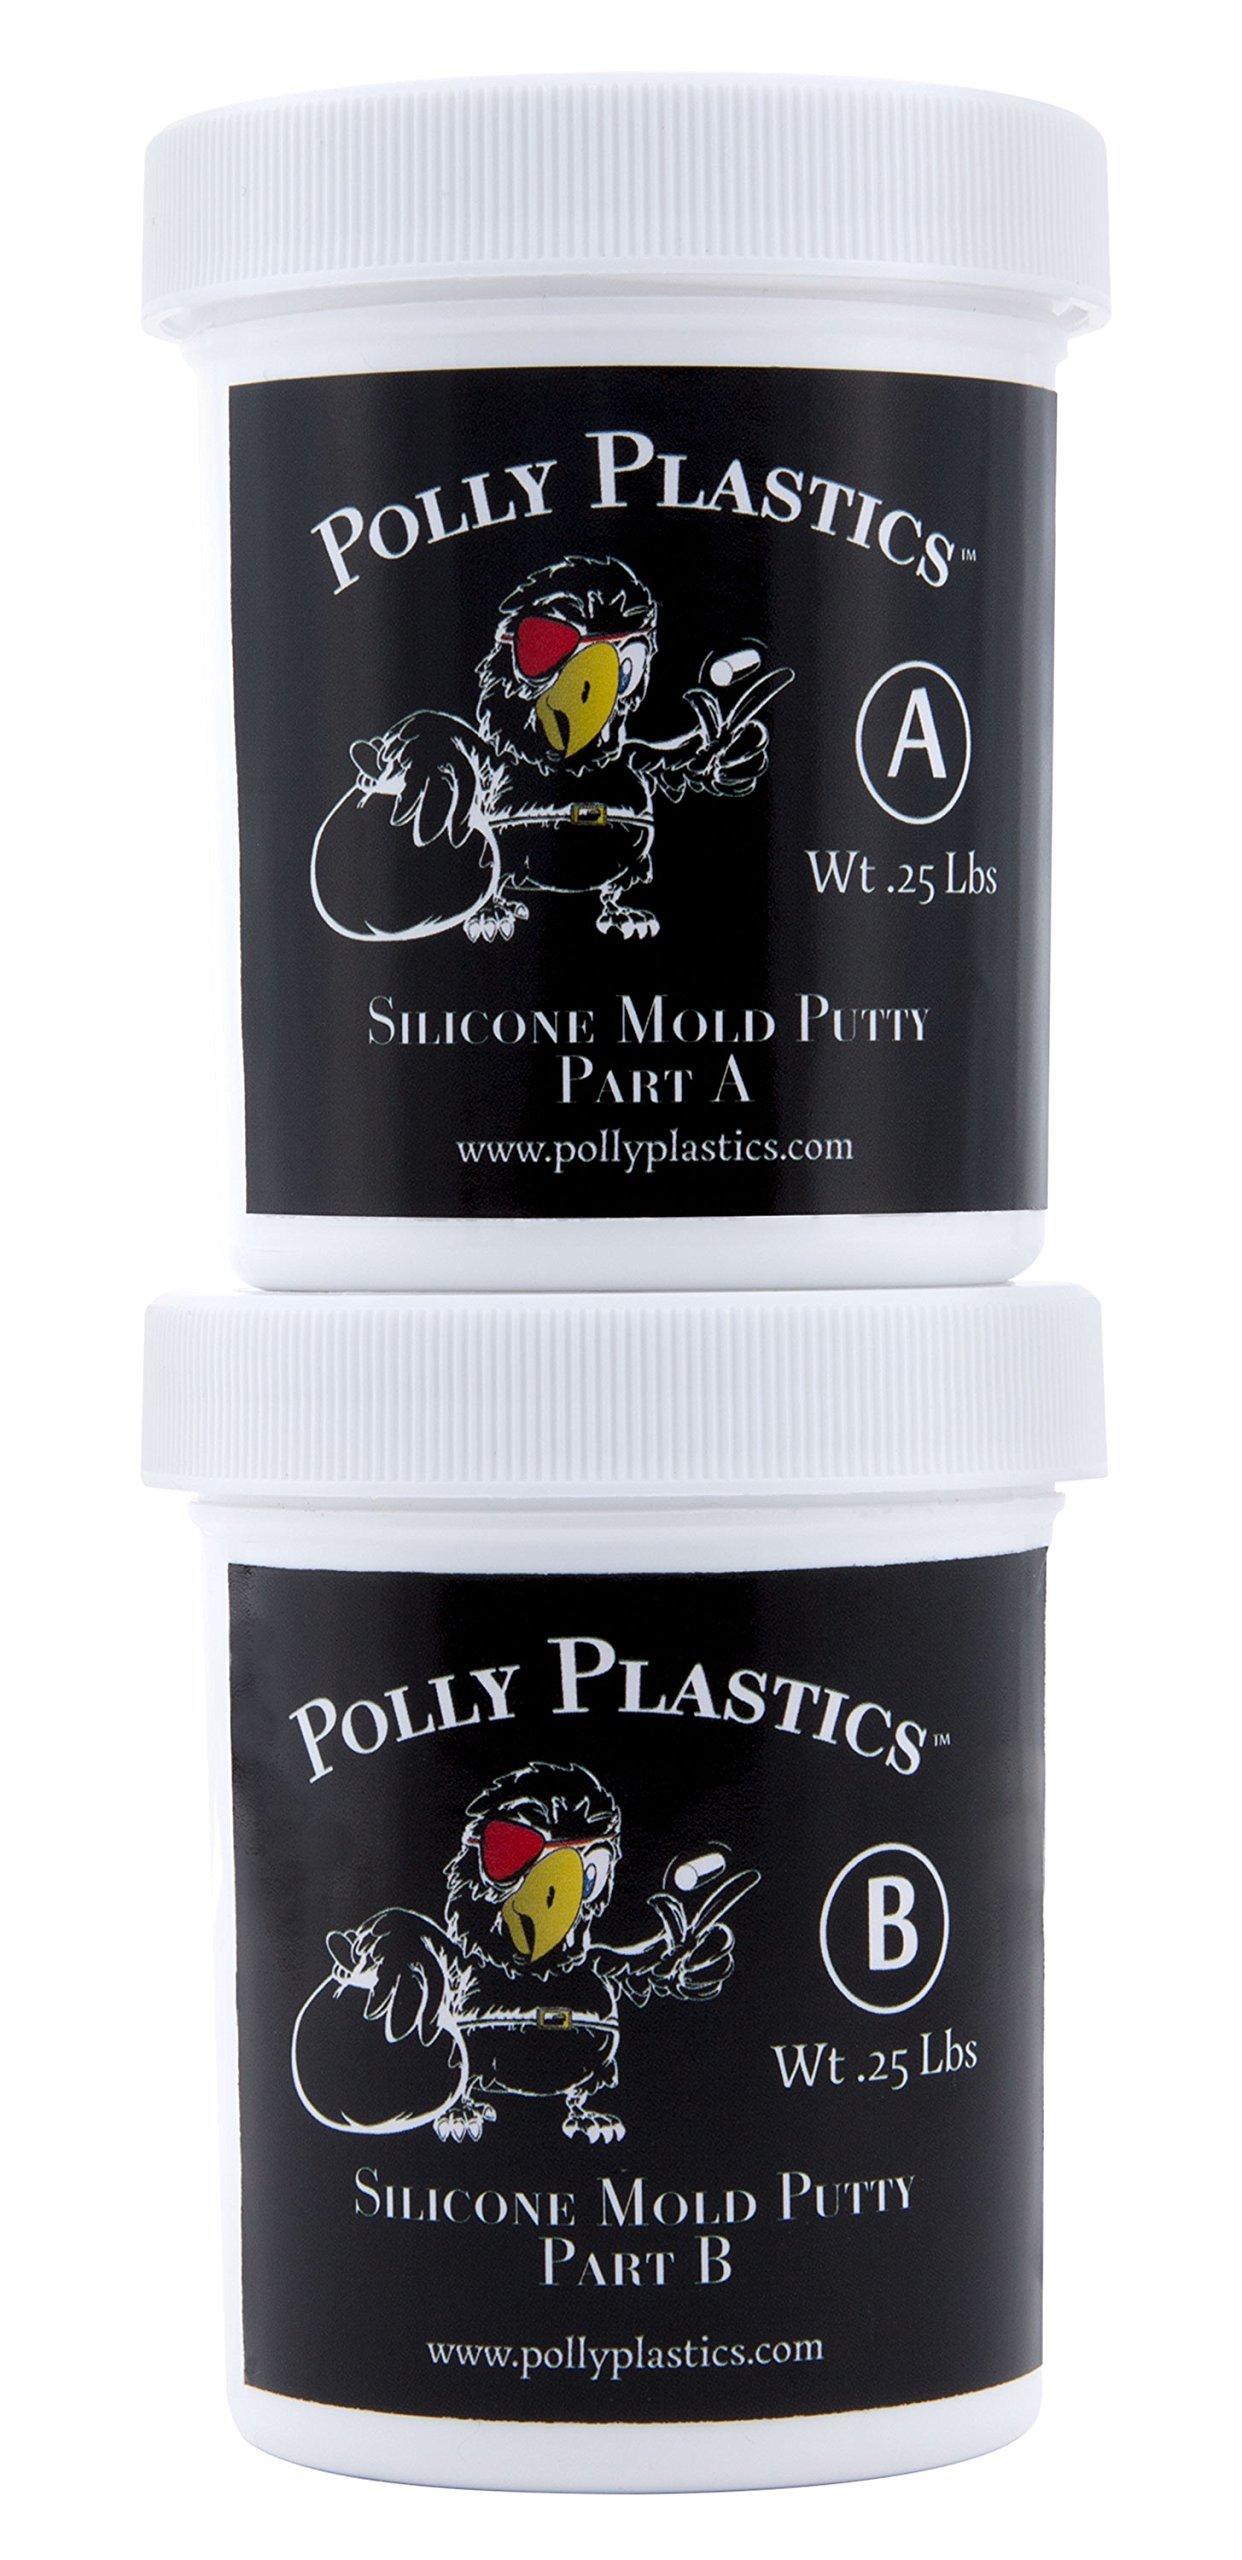 Polly Plastics Silicone Molding Putty - 1/2 Lb - for Moldable Plastic Pellets